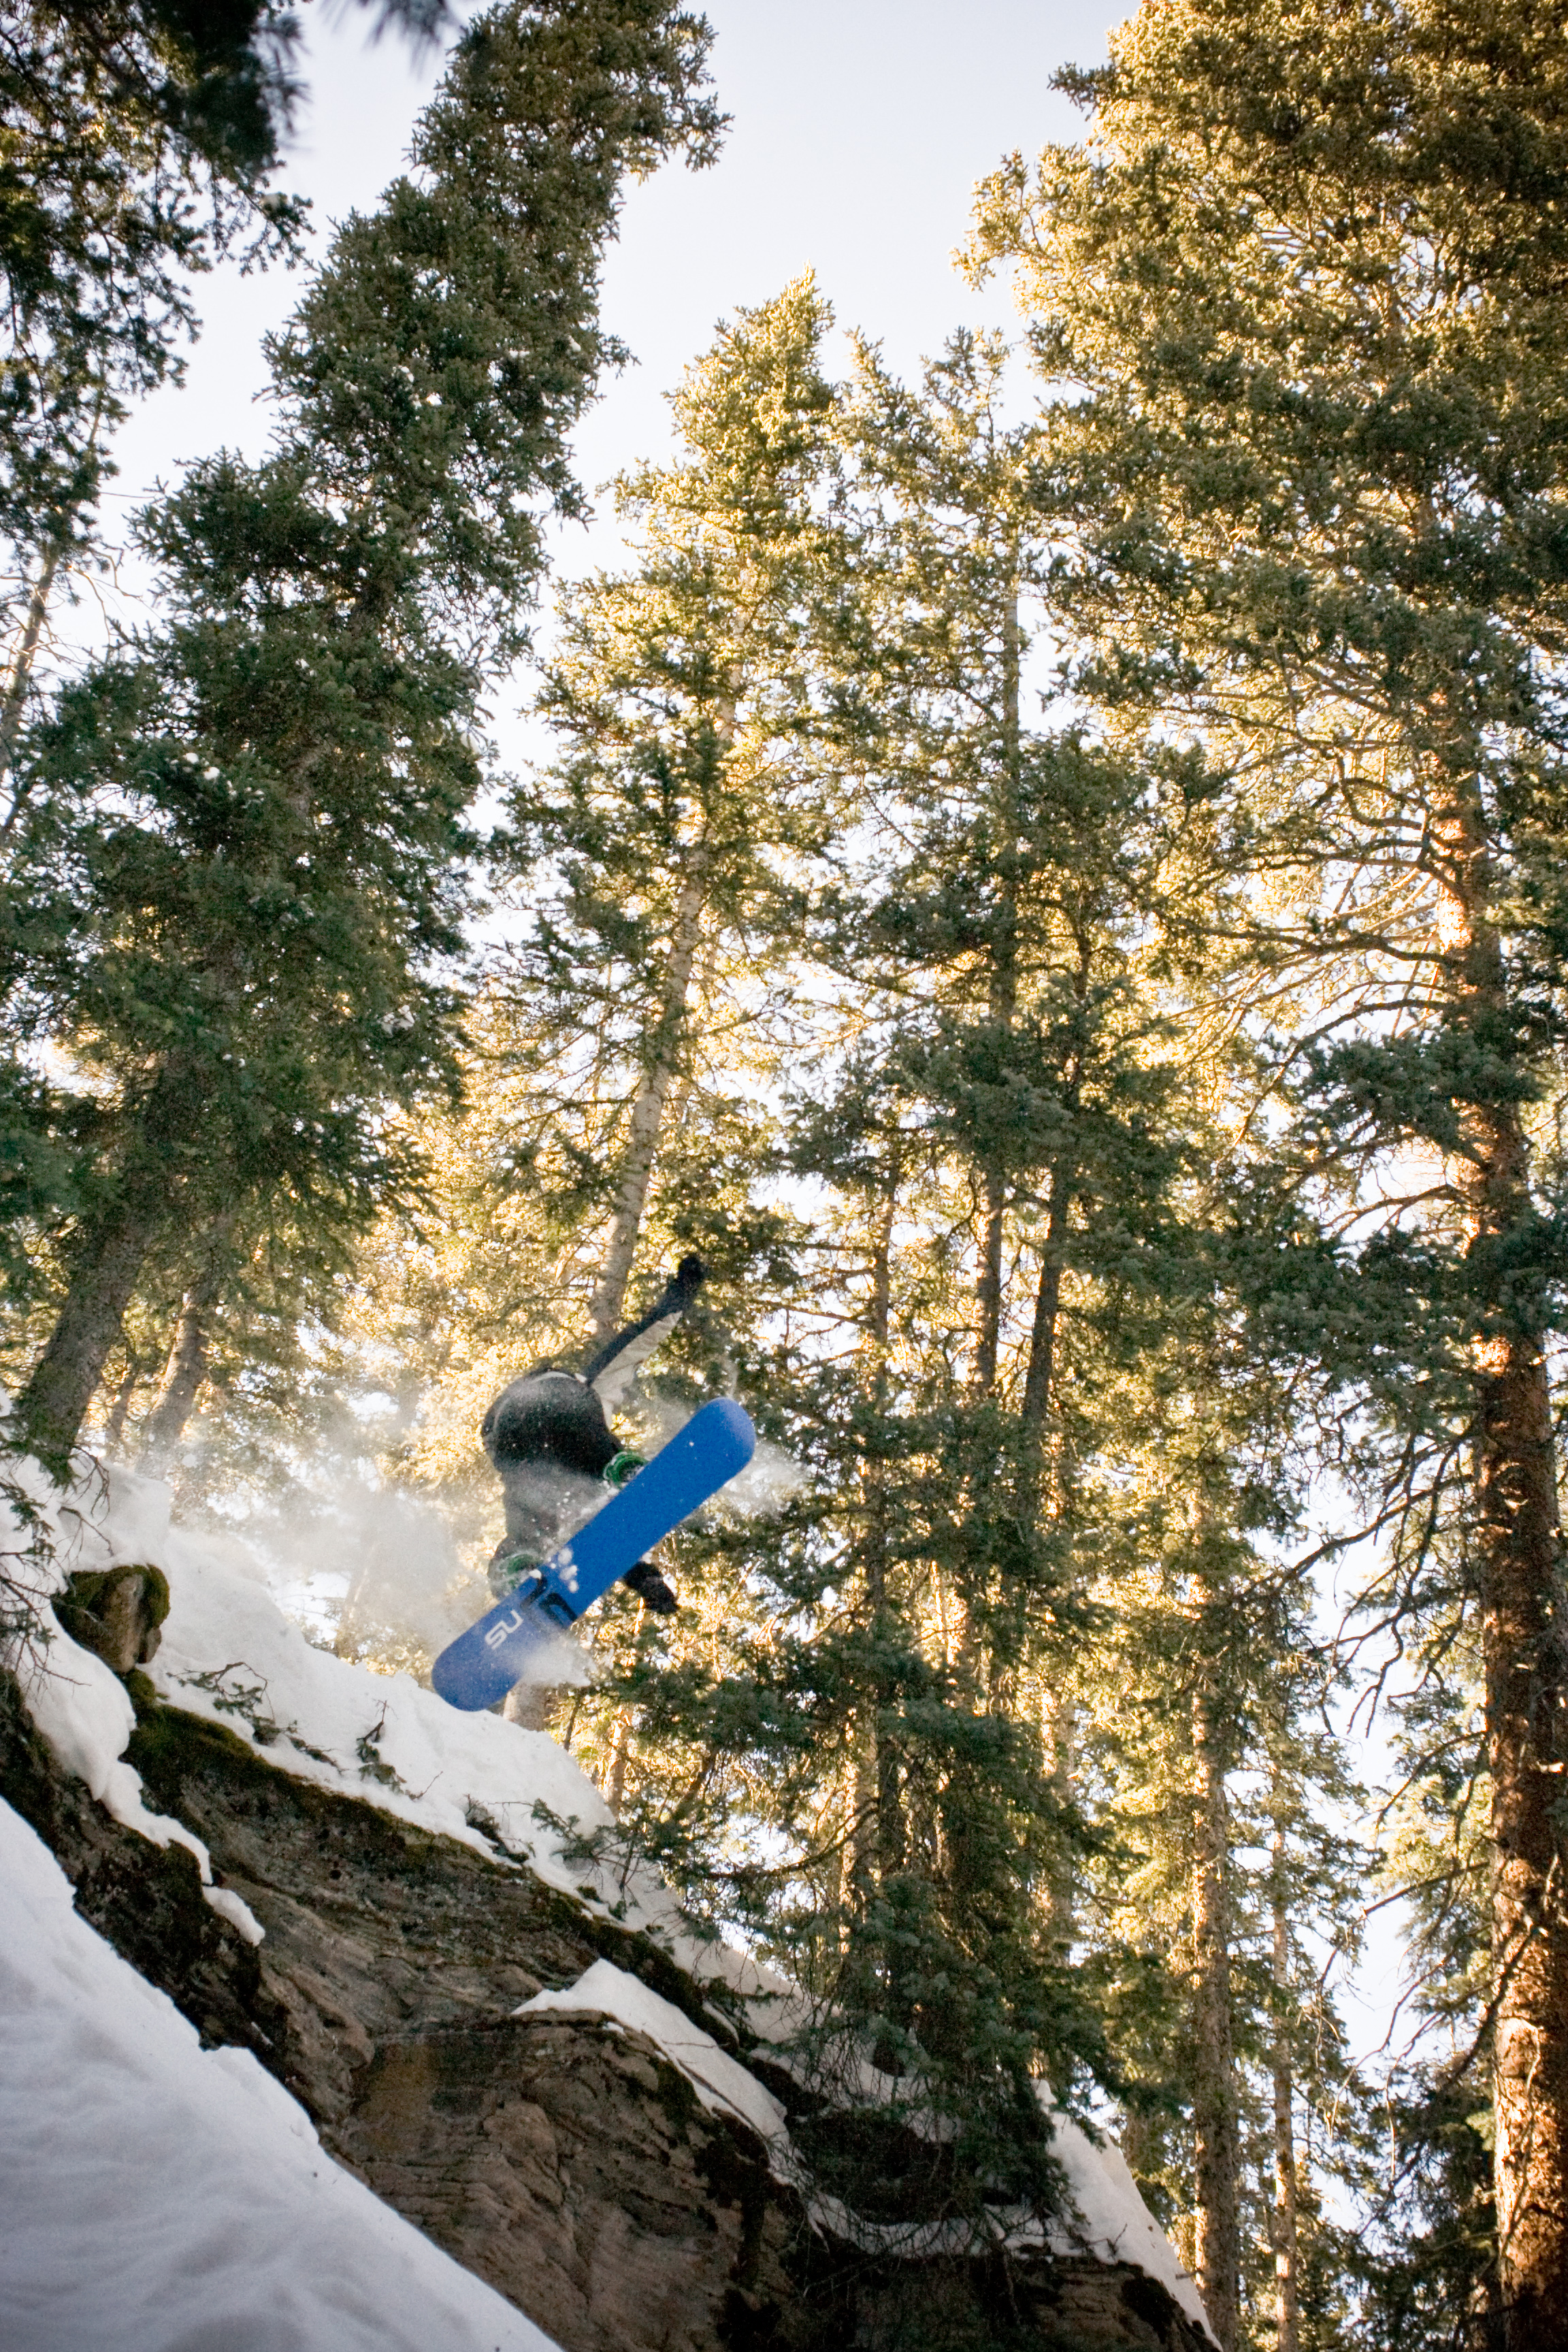 Backcountry Snowboard Air, Action, Snow, Trick, Trees, HQ Photo